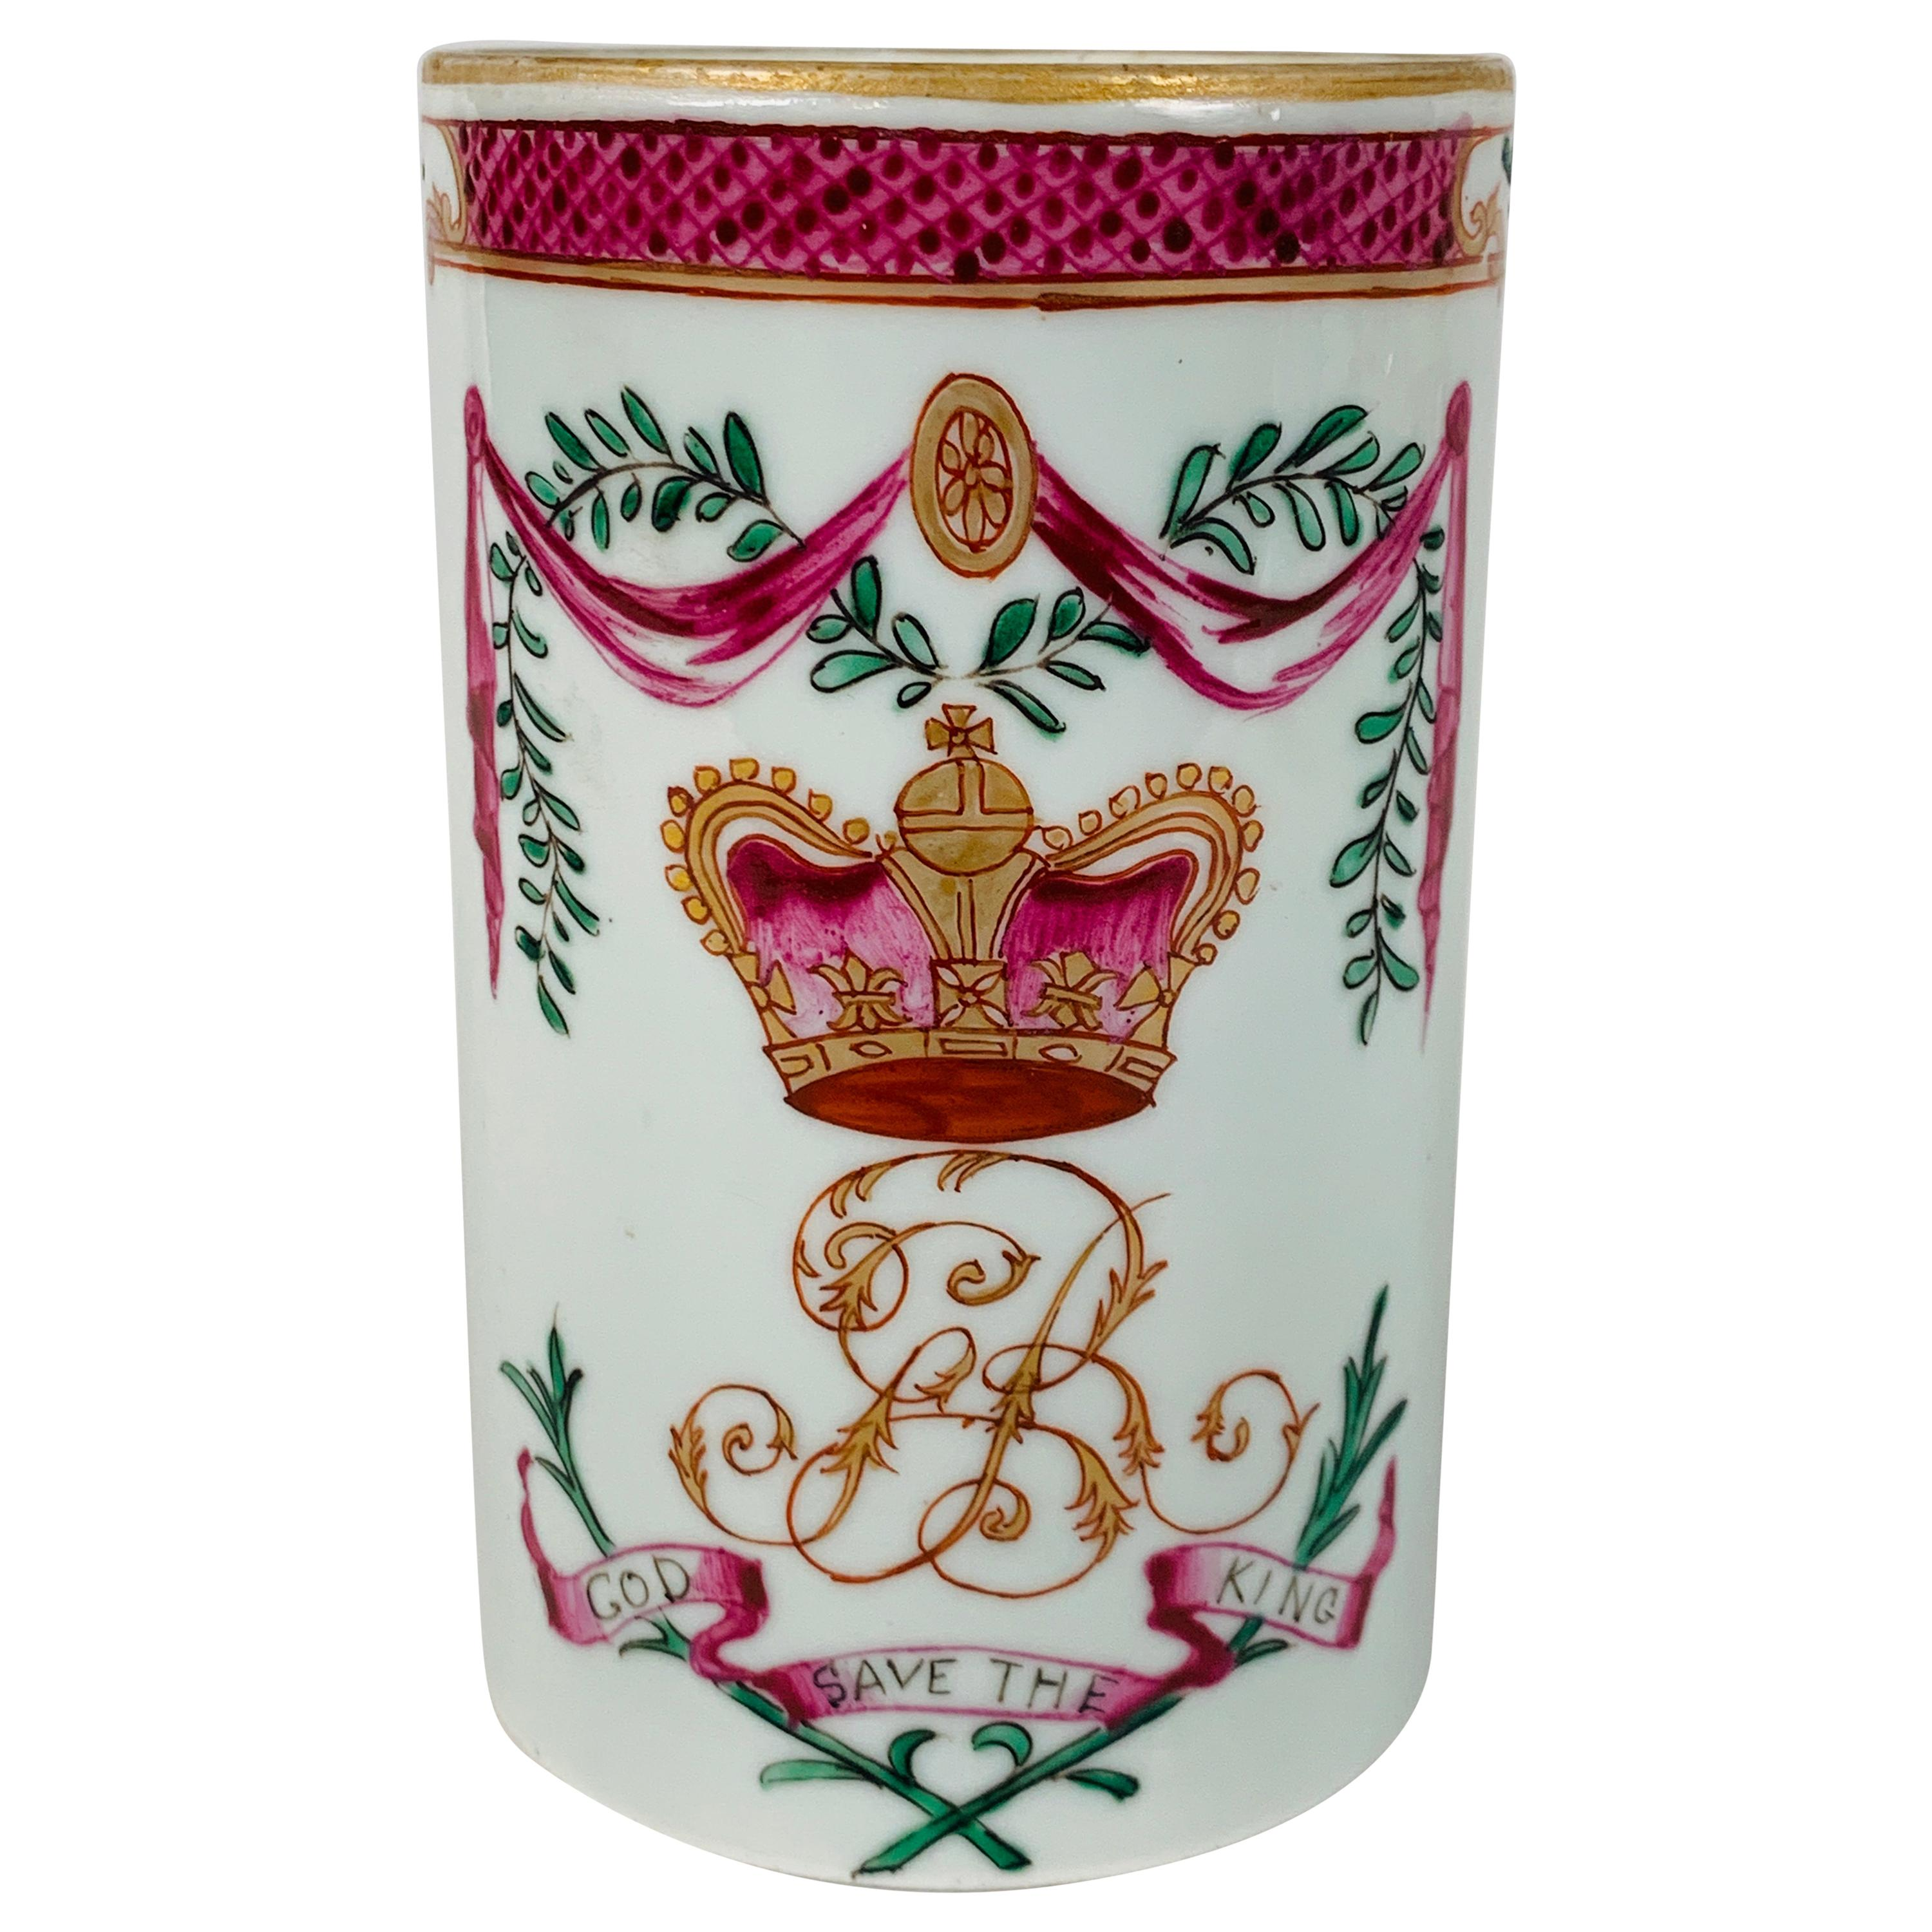 Motto God Save the King Hand Painted on an 18th Century Chinese Porcelain Mug